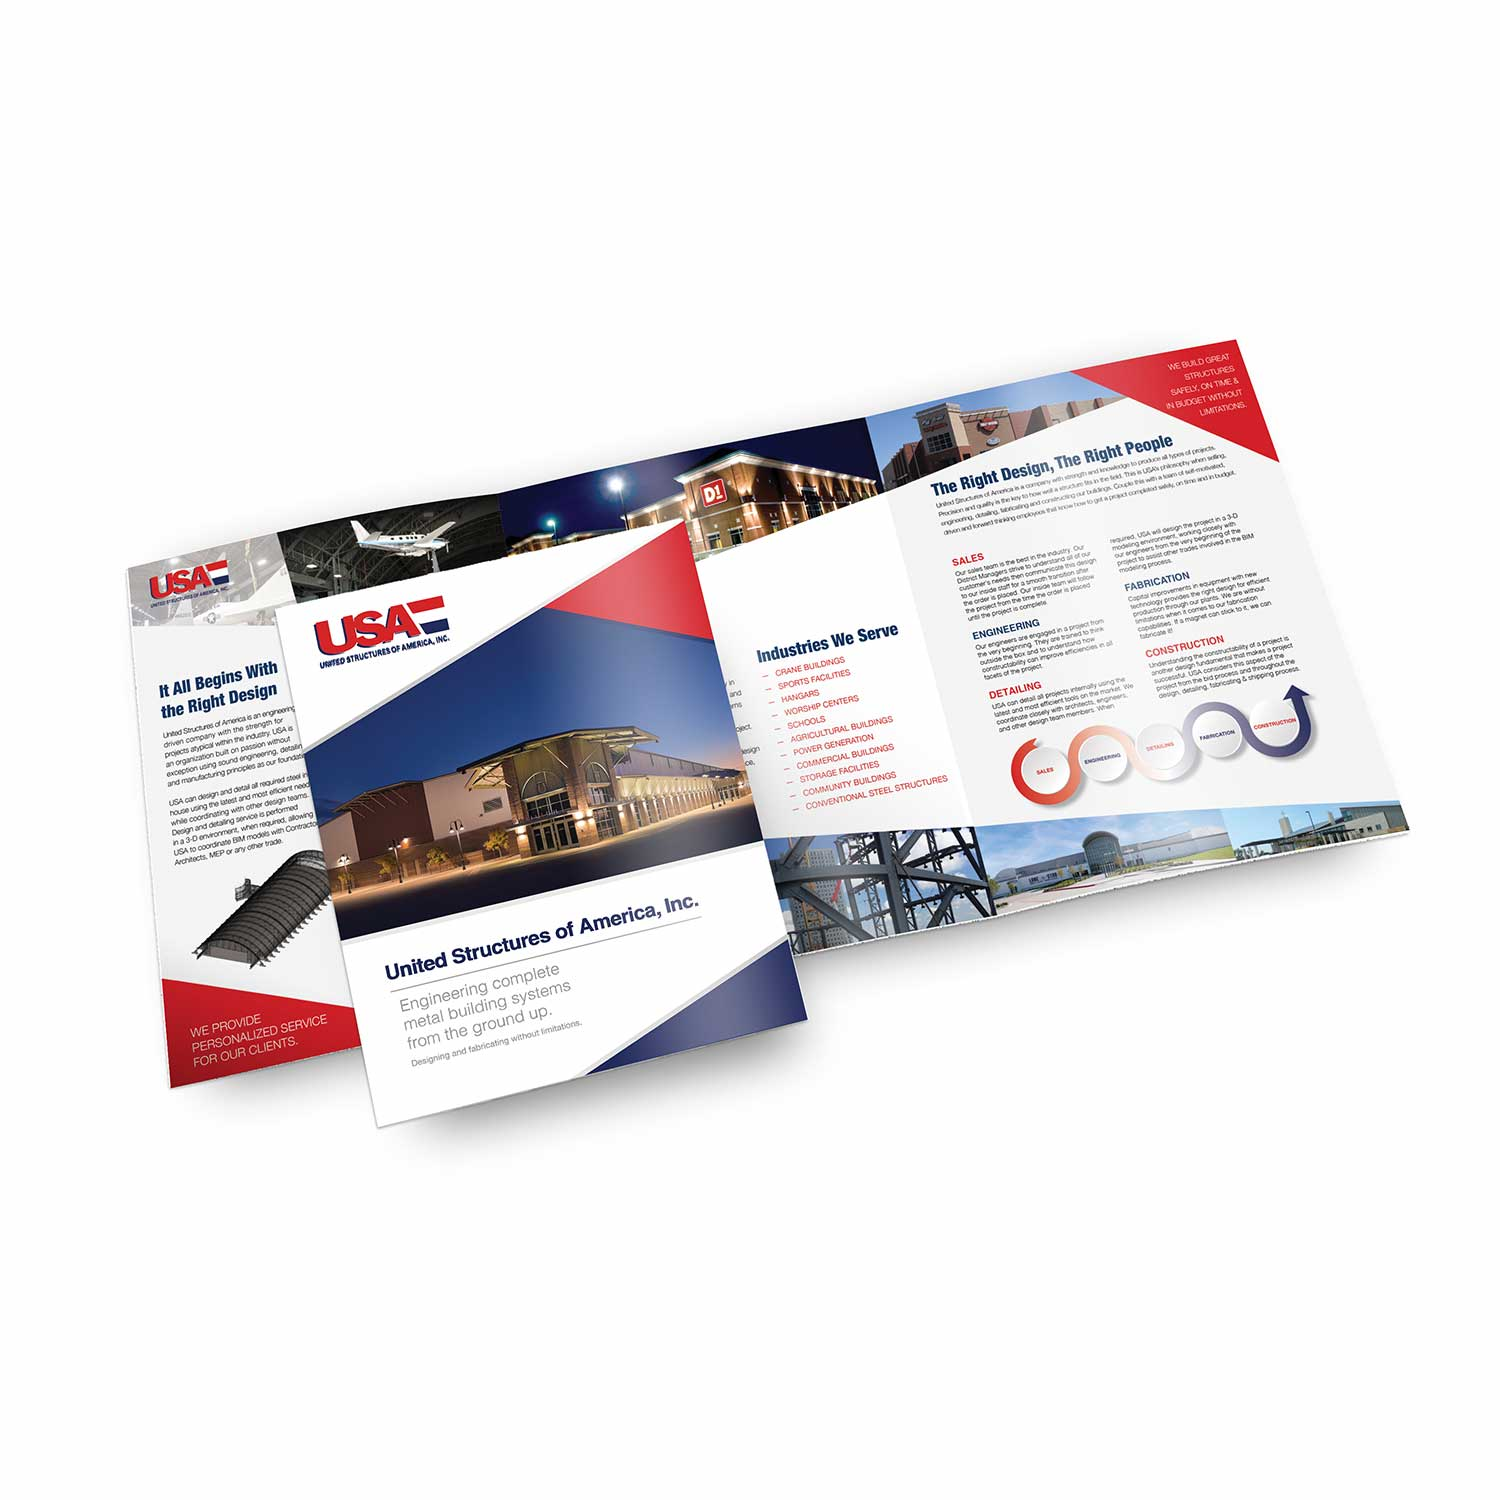 Graphic design, printing and photography of tri-fold brochure for USA.